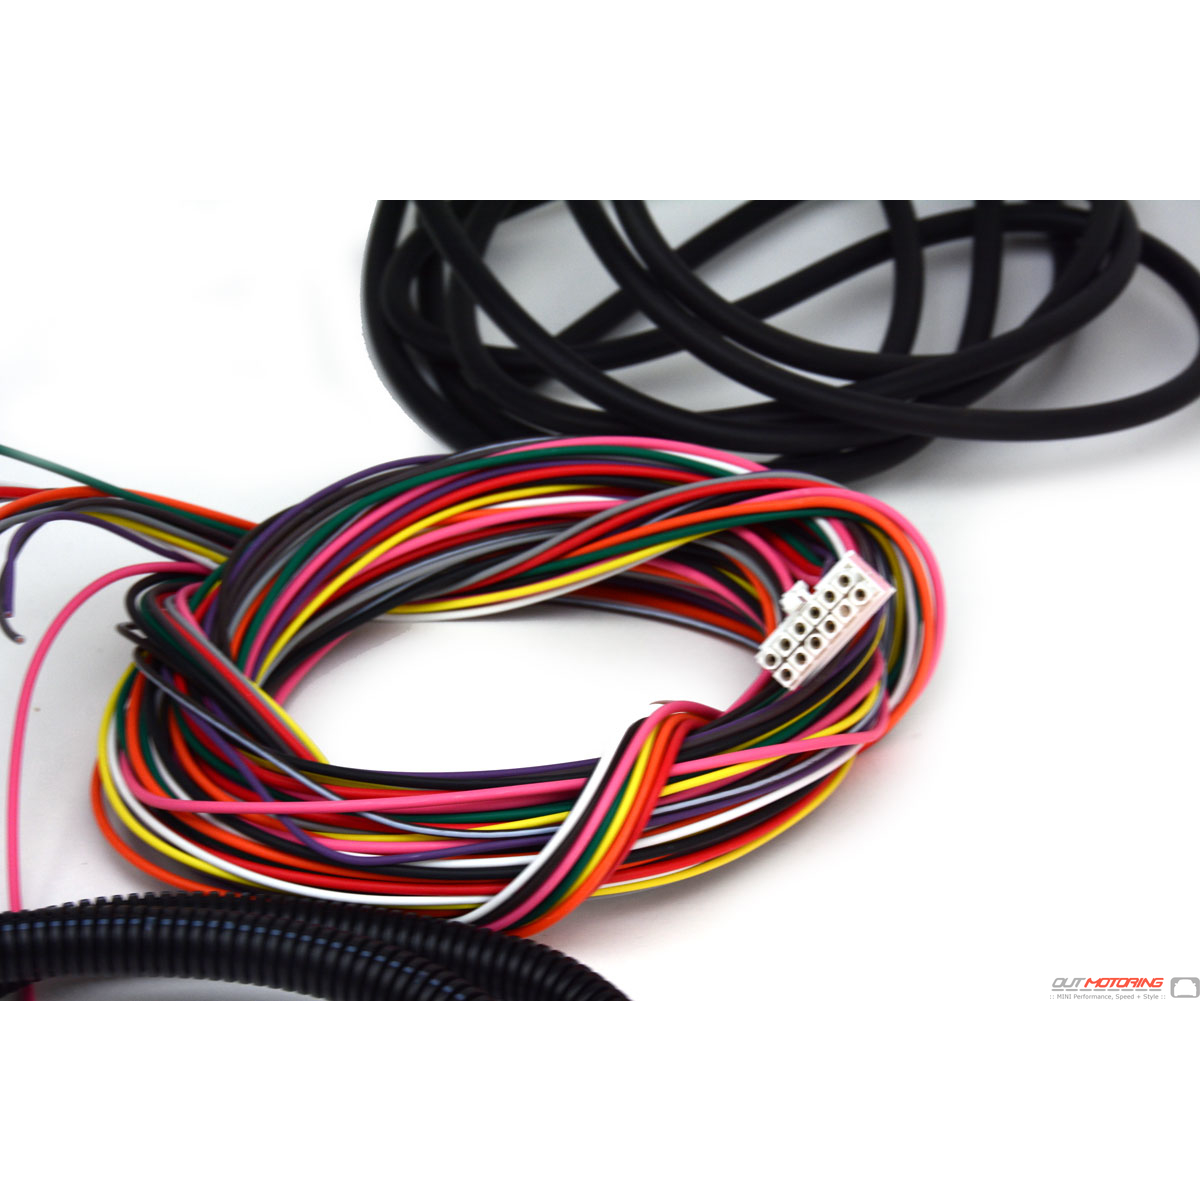 Aem Water Methanol Injection Kit 30 3300 V2 Mini Cooper Wiring Harness